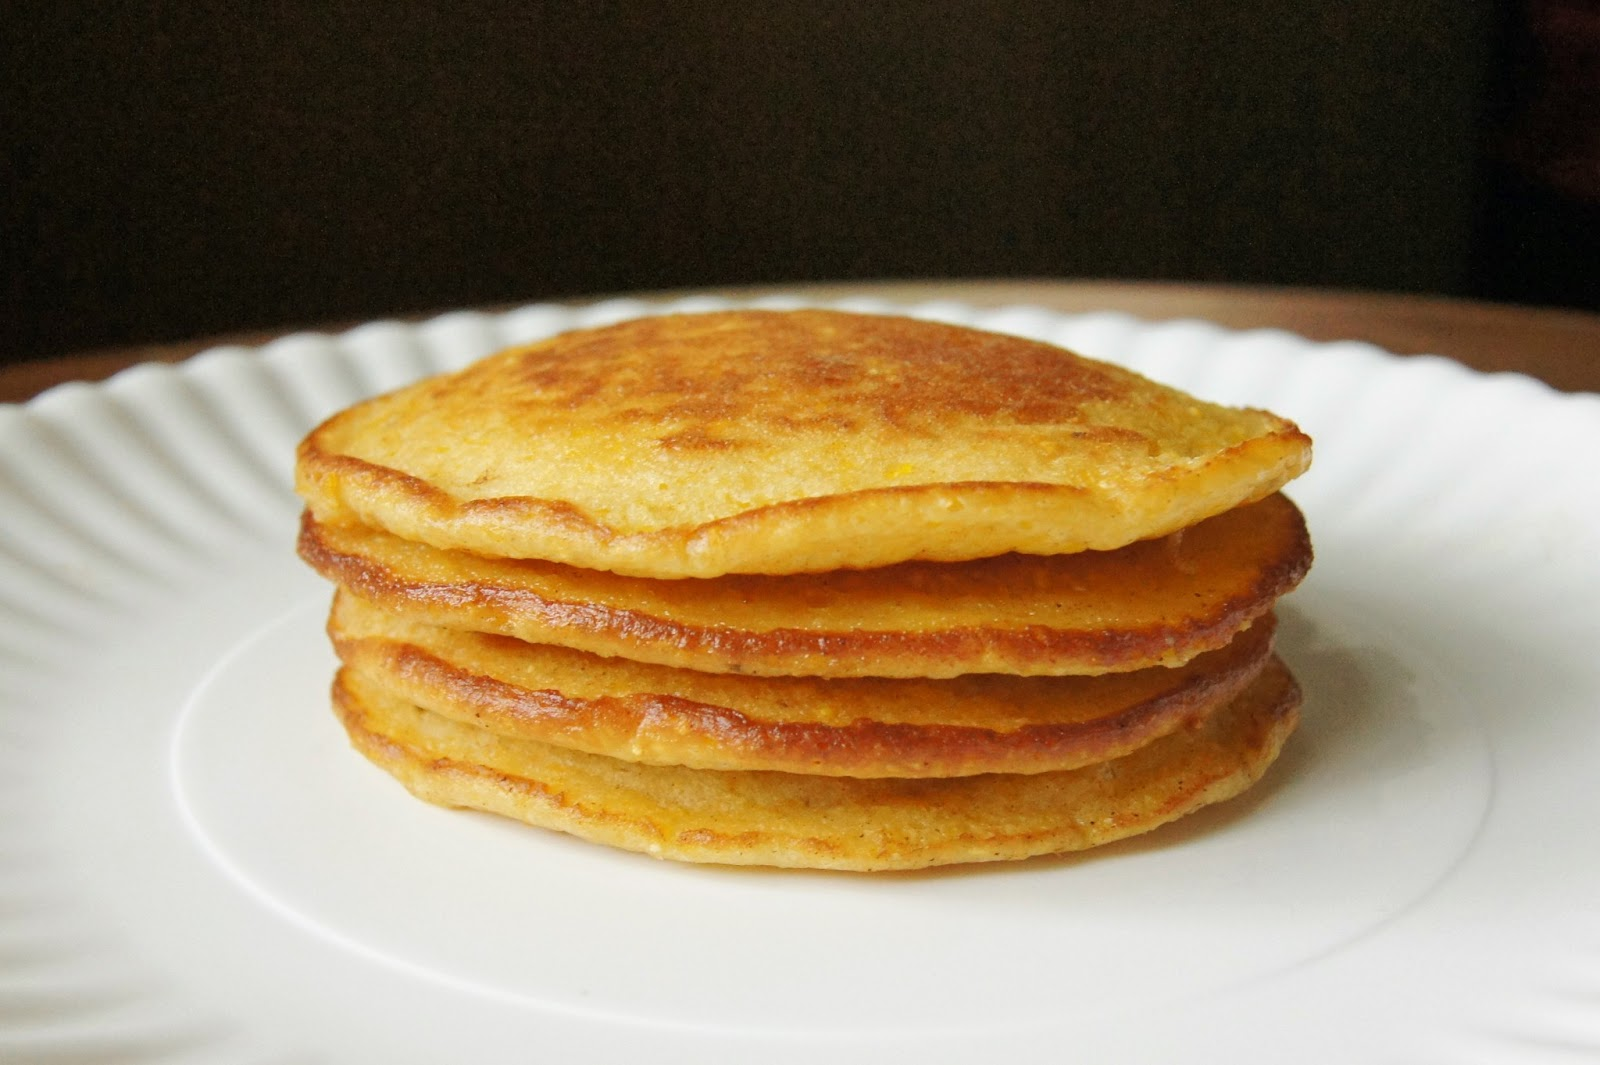 Baked Sunday Mornings: Cornmeal Griddle Cakes | Ipso Fatto